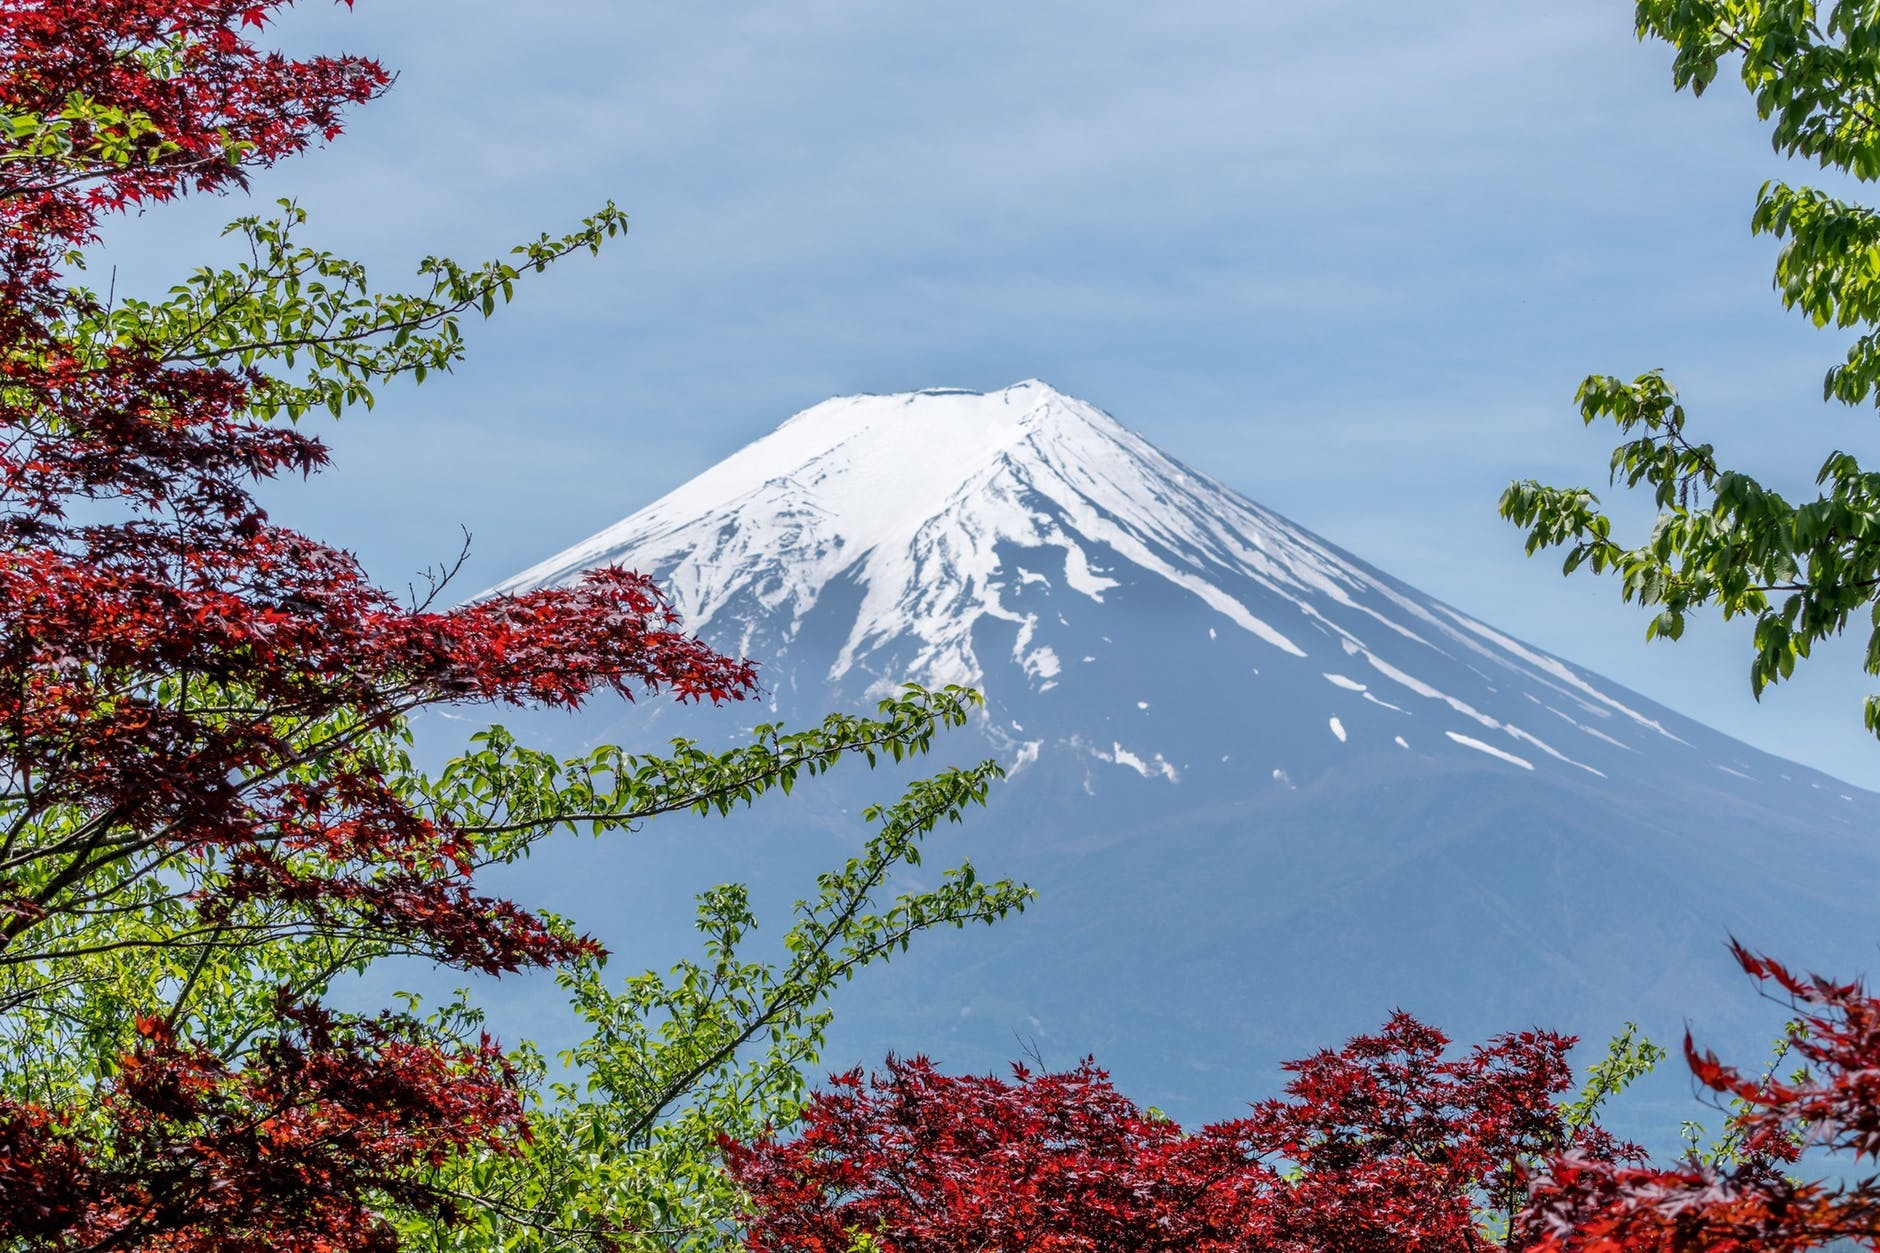 Flight Deal Round Trip From San Francisco Area to Tokyo #sanfrancisco #tokyo #1week